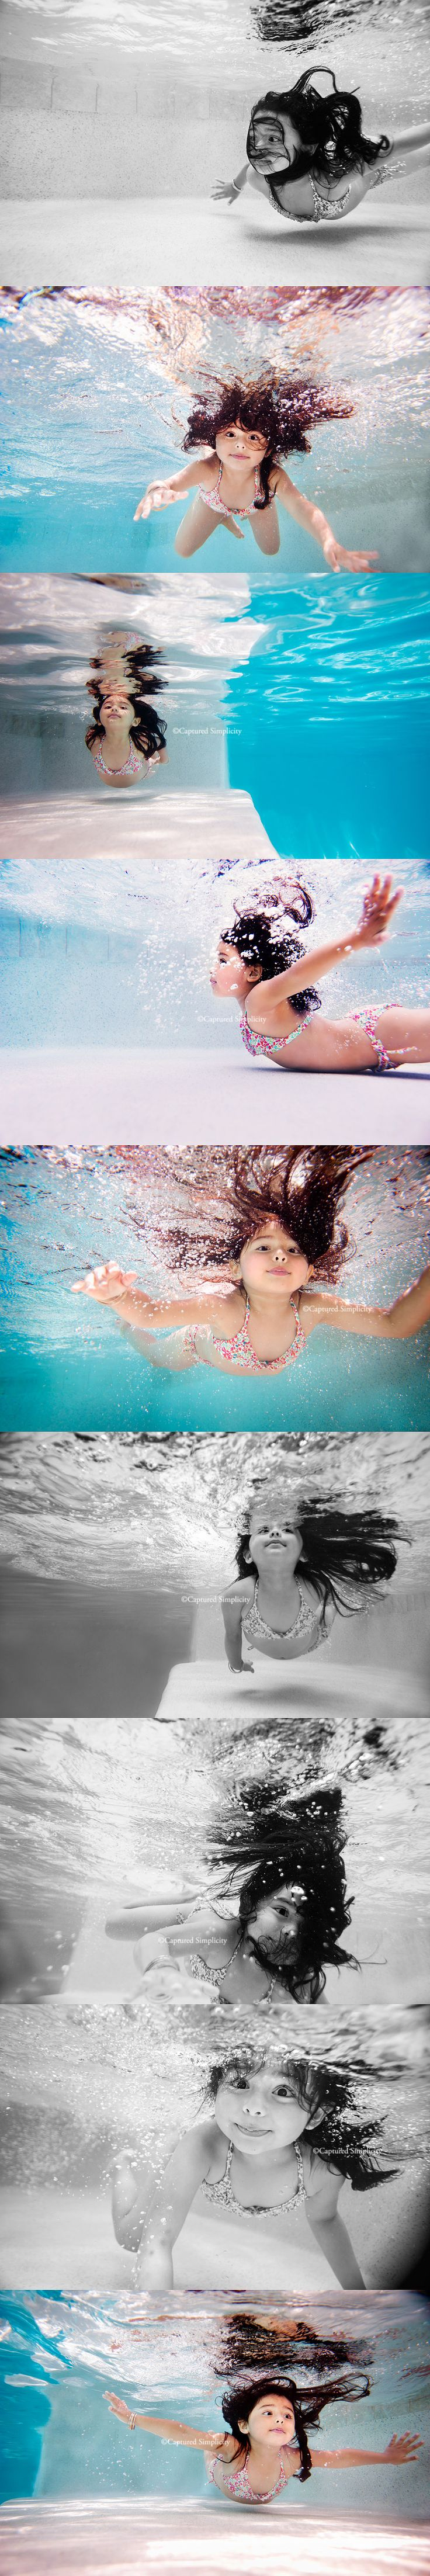 underwater child photographer Houston, Texas photos of children swimming underwater photography